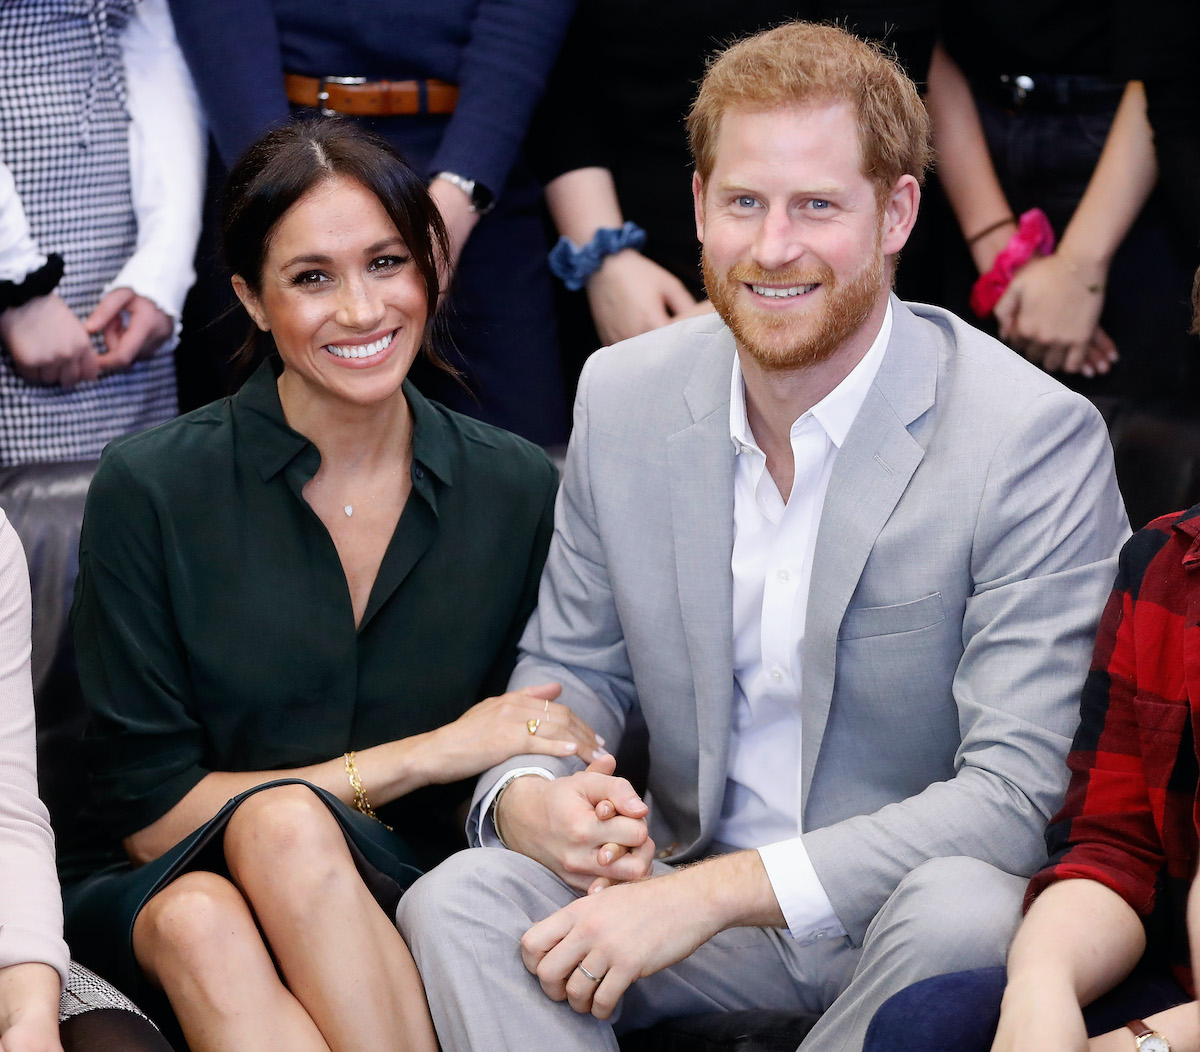 Prince Harry and Meghan Markle visit to the Joff Youth Centre in Peacehaven